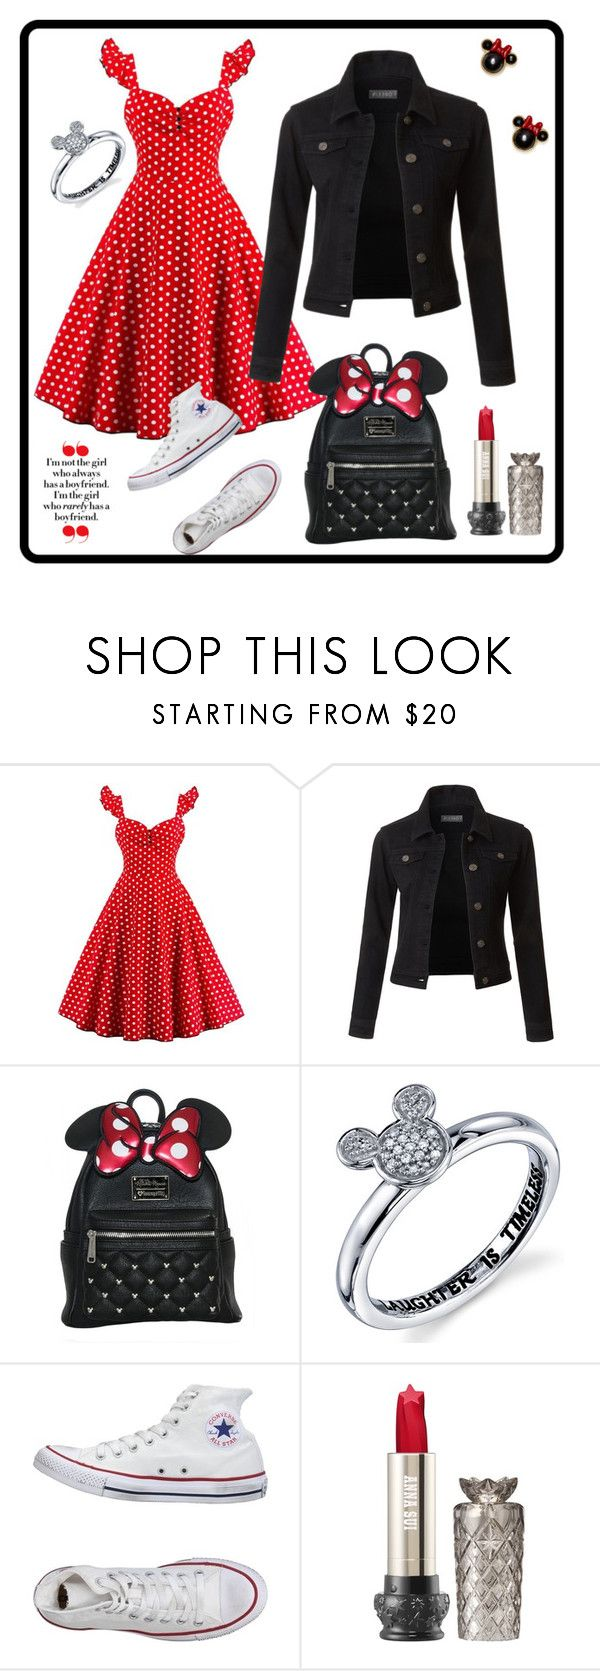 """""""Minnie in School"""" by bearigodon ❤ liked on Polyvore featuring LE3NO, Disney, Converse and Kate Spade"""